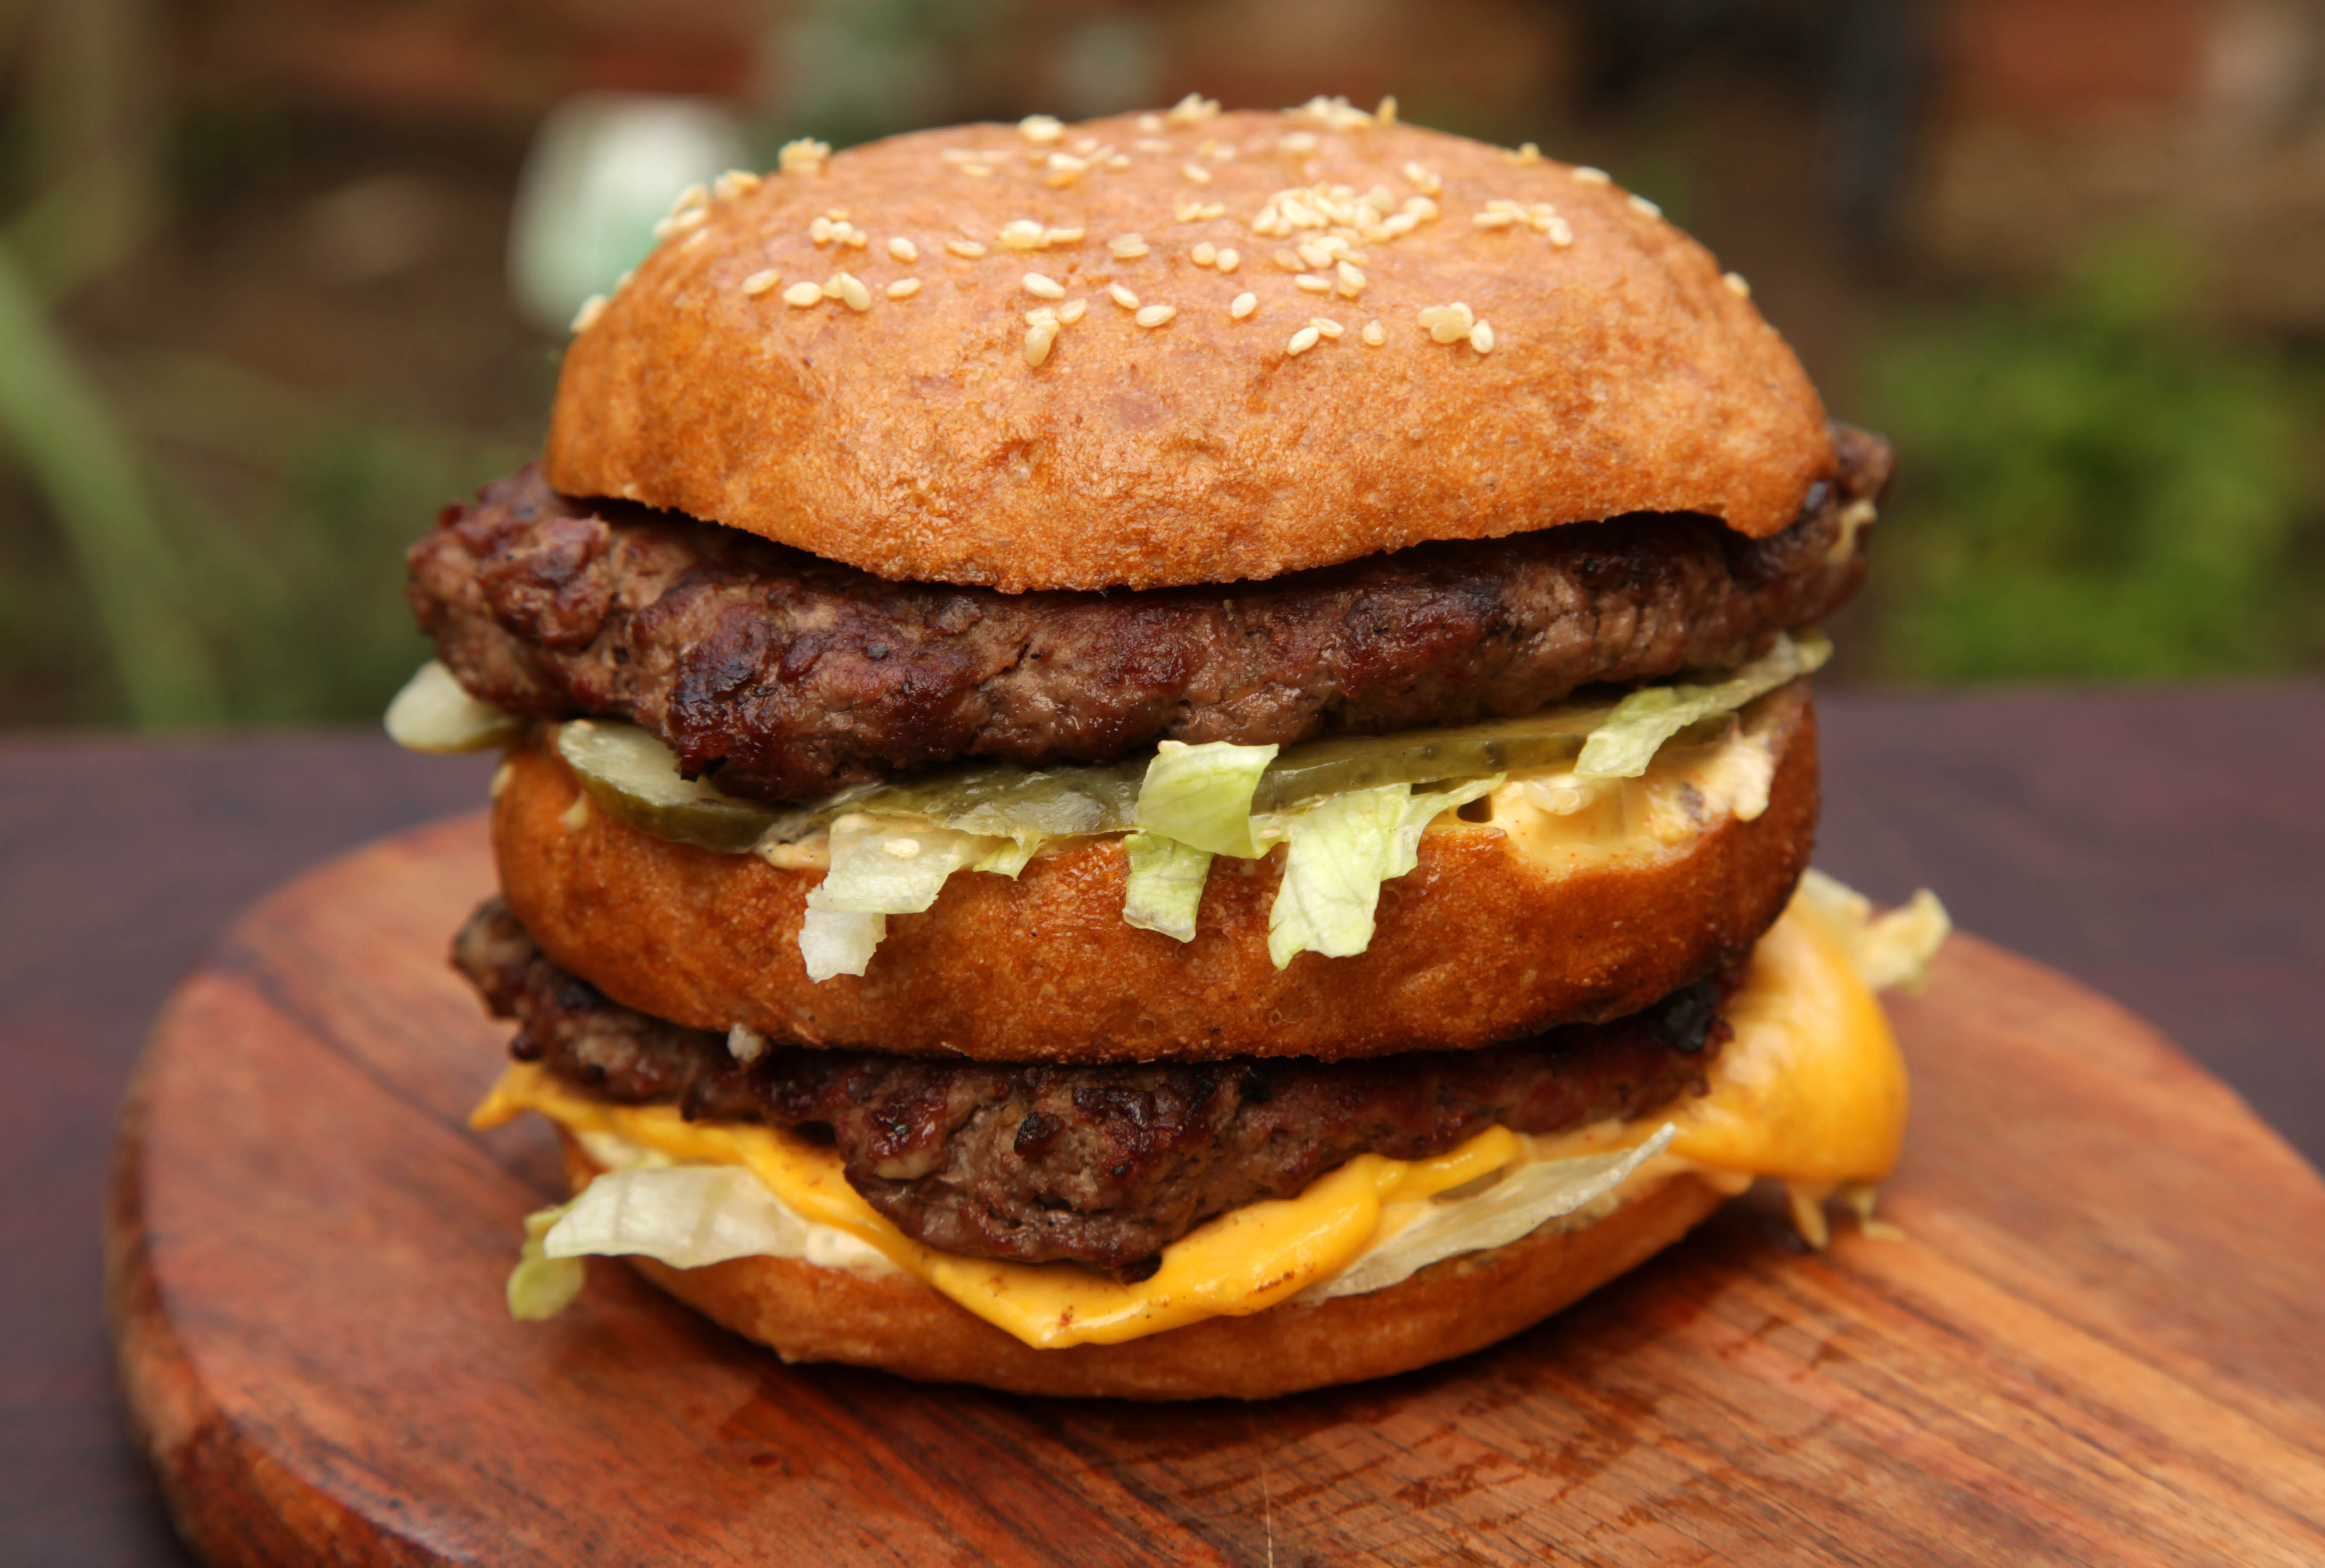 Picture of How to Cook a McDonalds Big Mac (But Better)